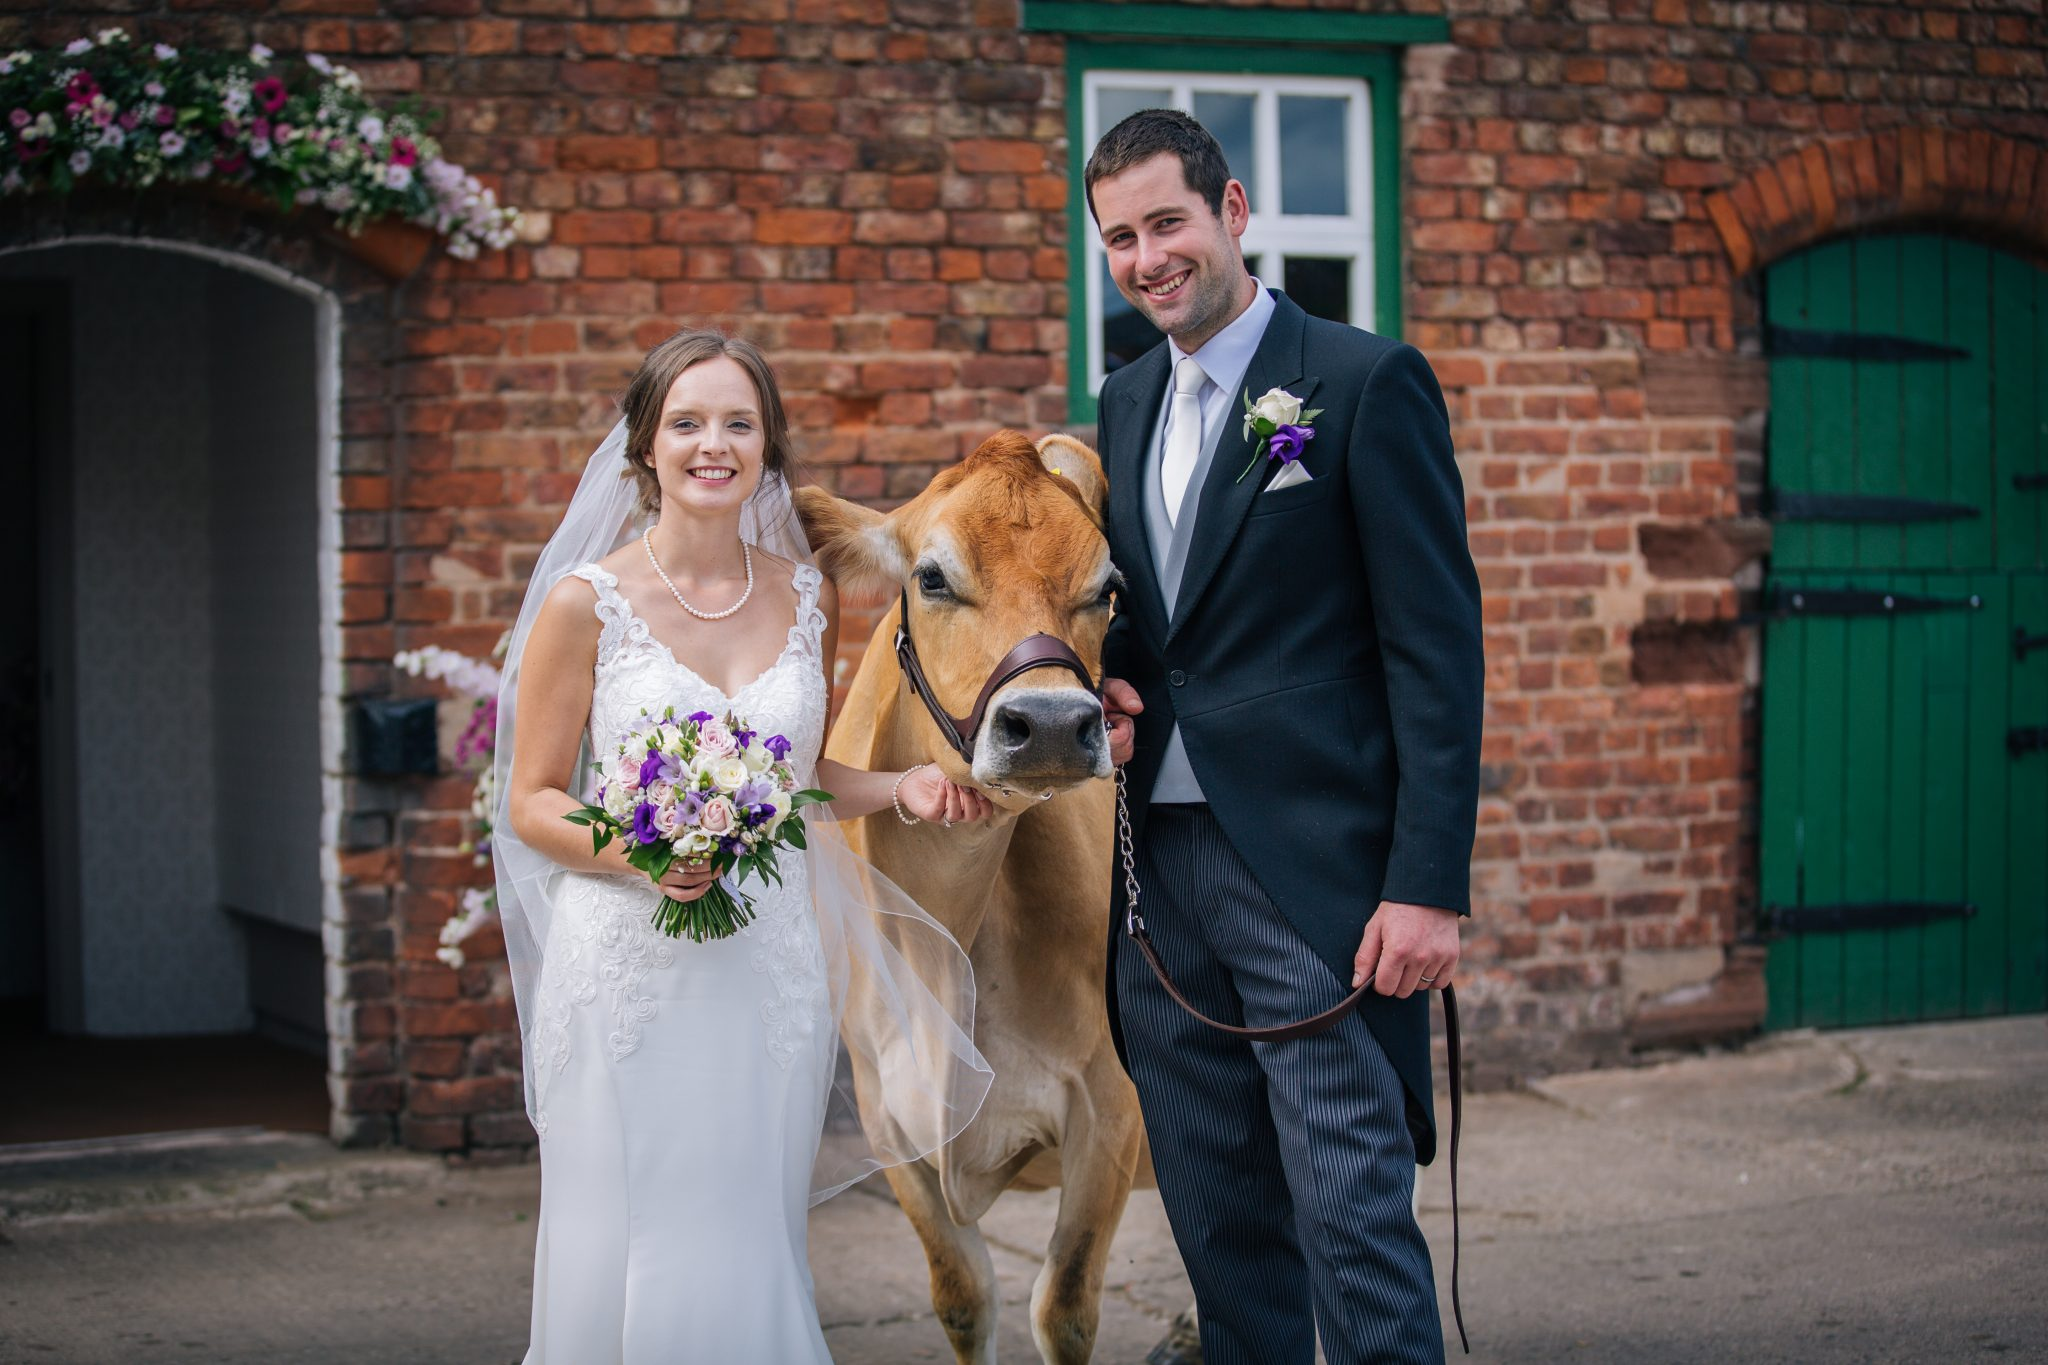 Joanna Eardley Farm Wedding photographer